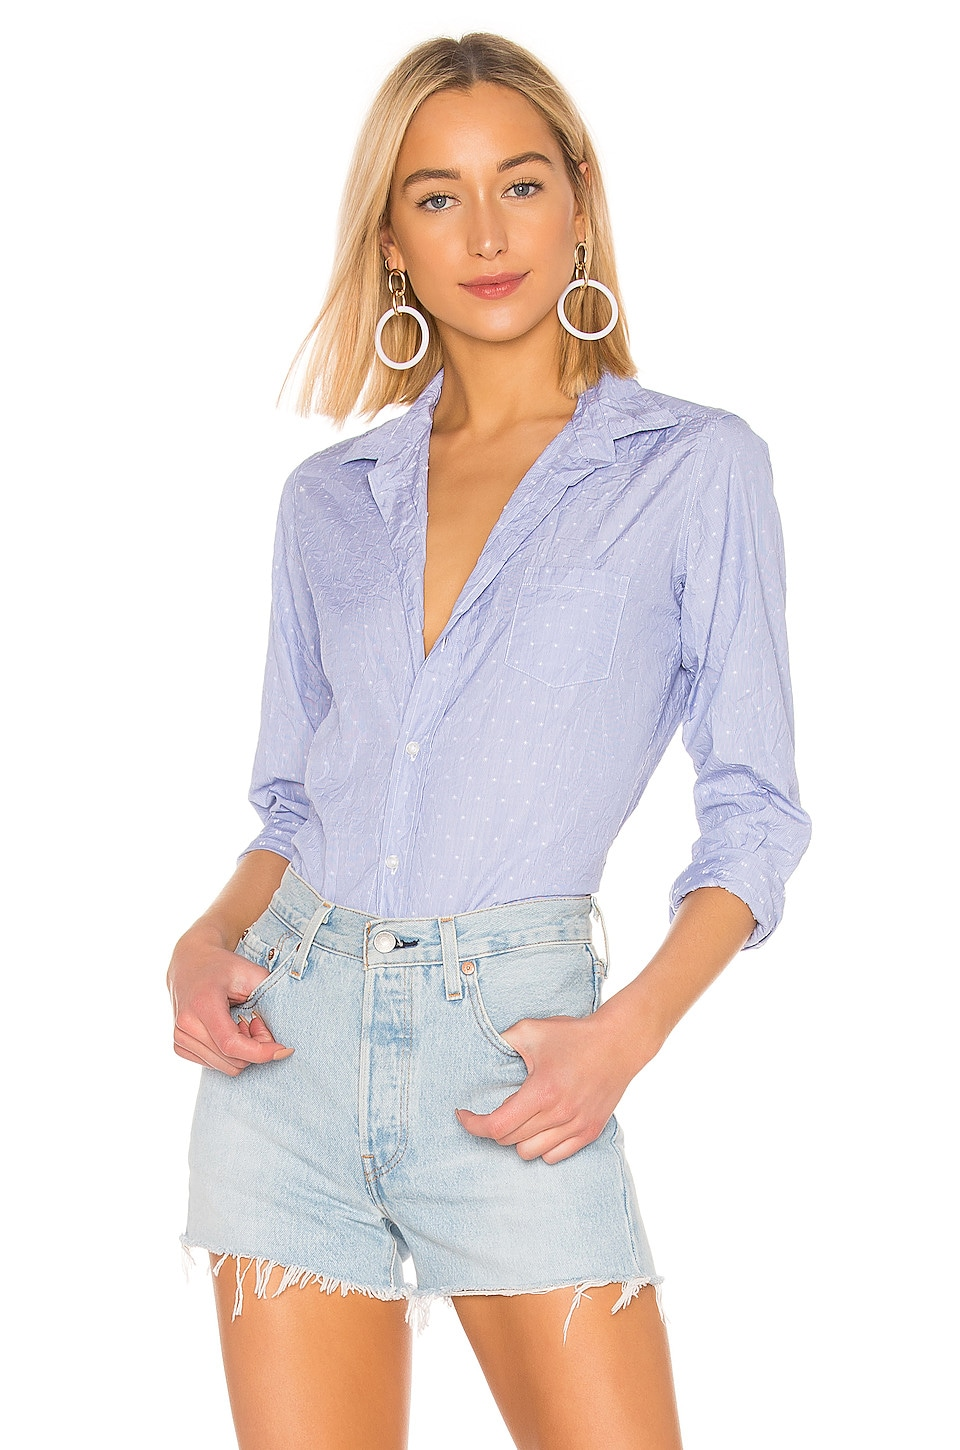 Frank & Eileen Barry Limited Edition Button Down Blouse in White Stars